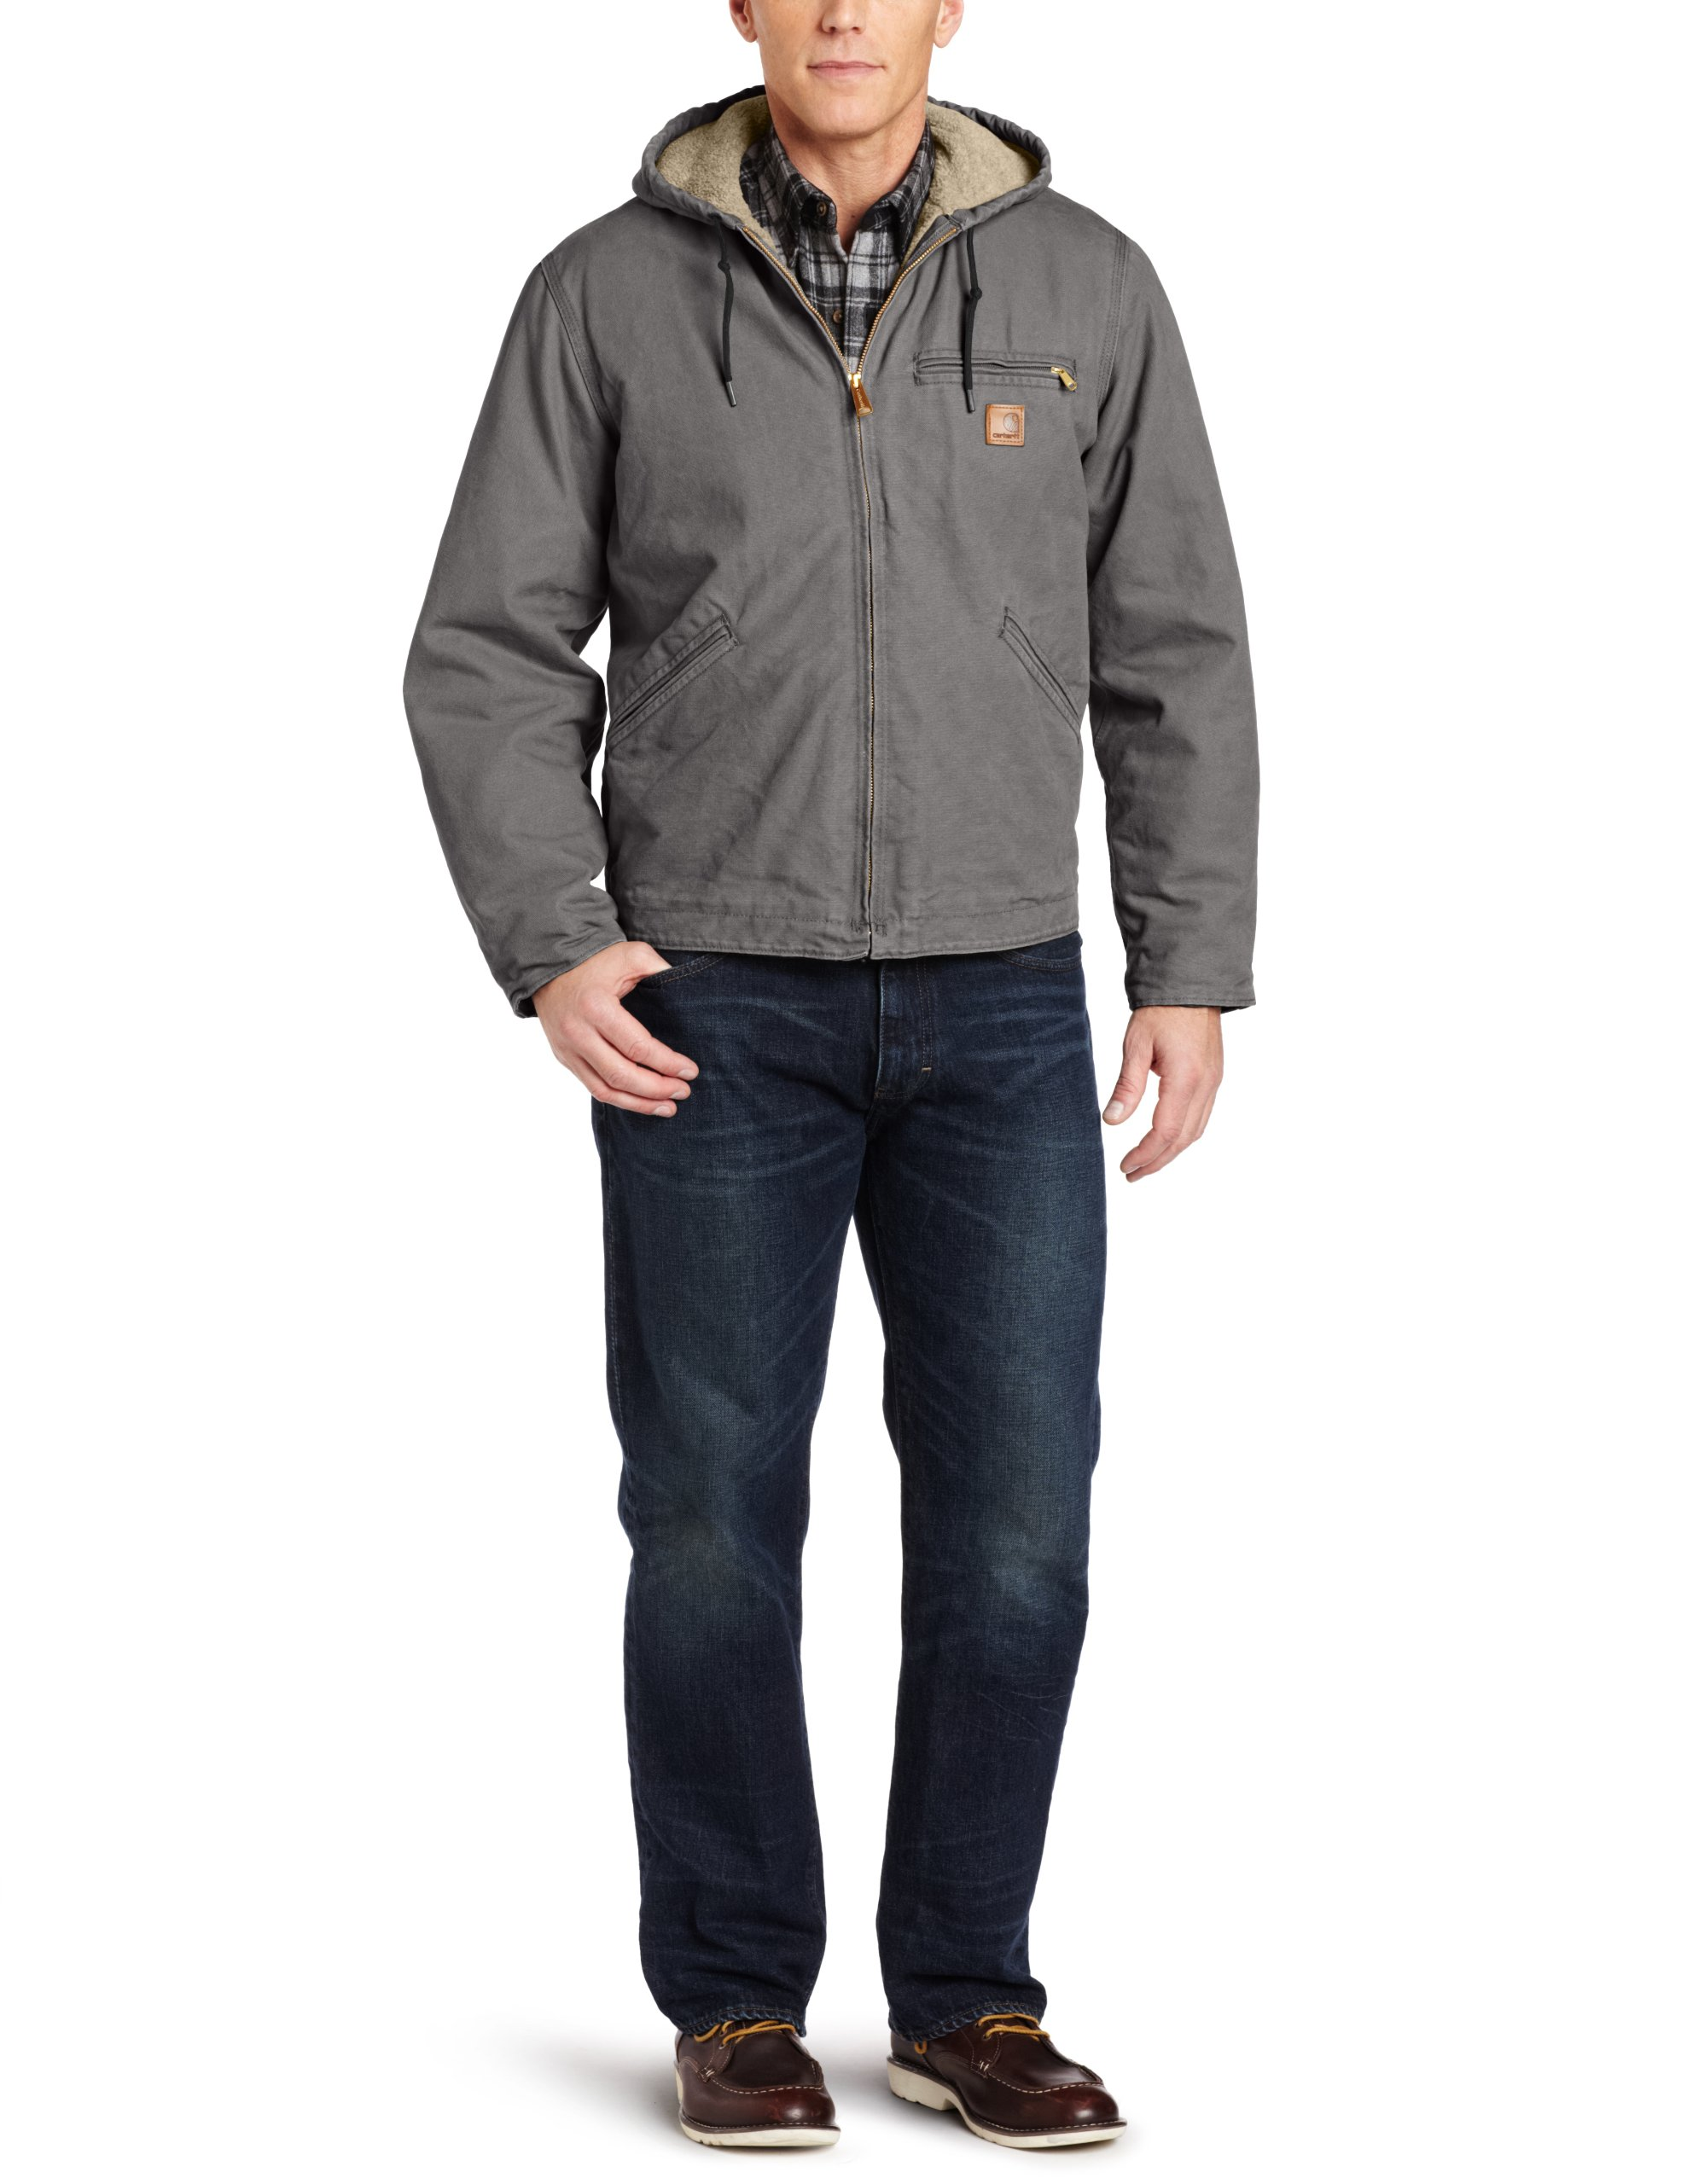 Carhartt Men's Big & Tall Sherpa Lined Sandstone Sierra Jacket J141,Gravel,XXXX-Large Tall